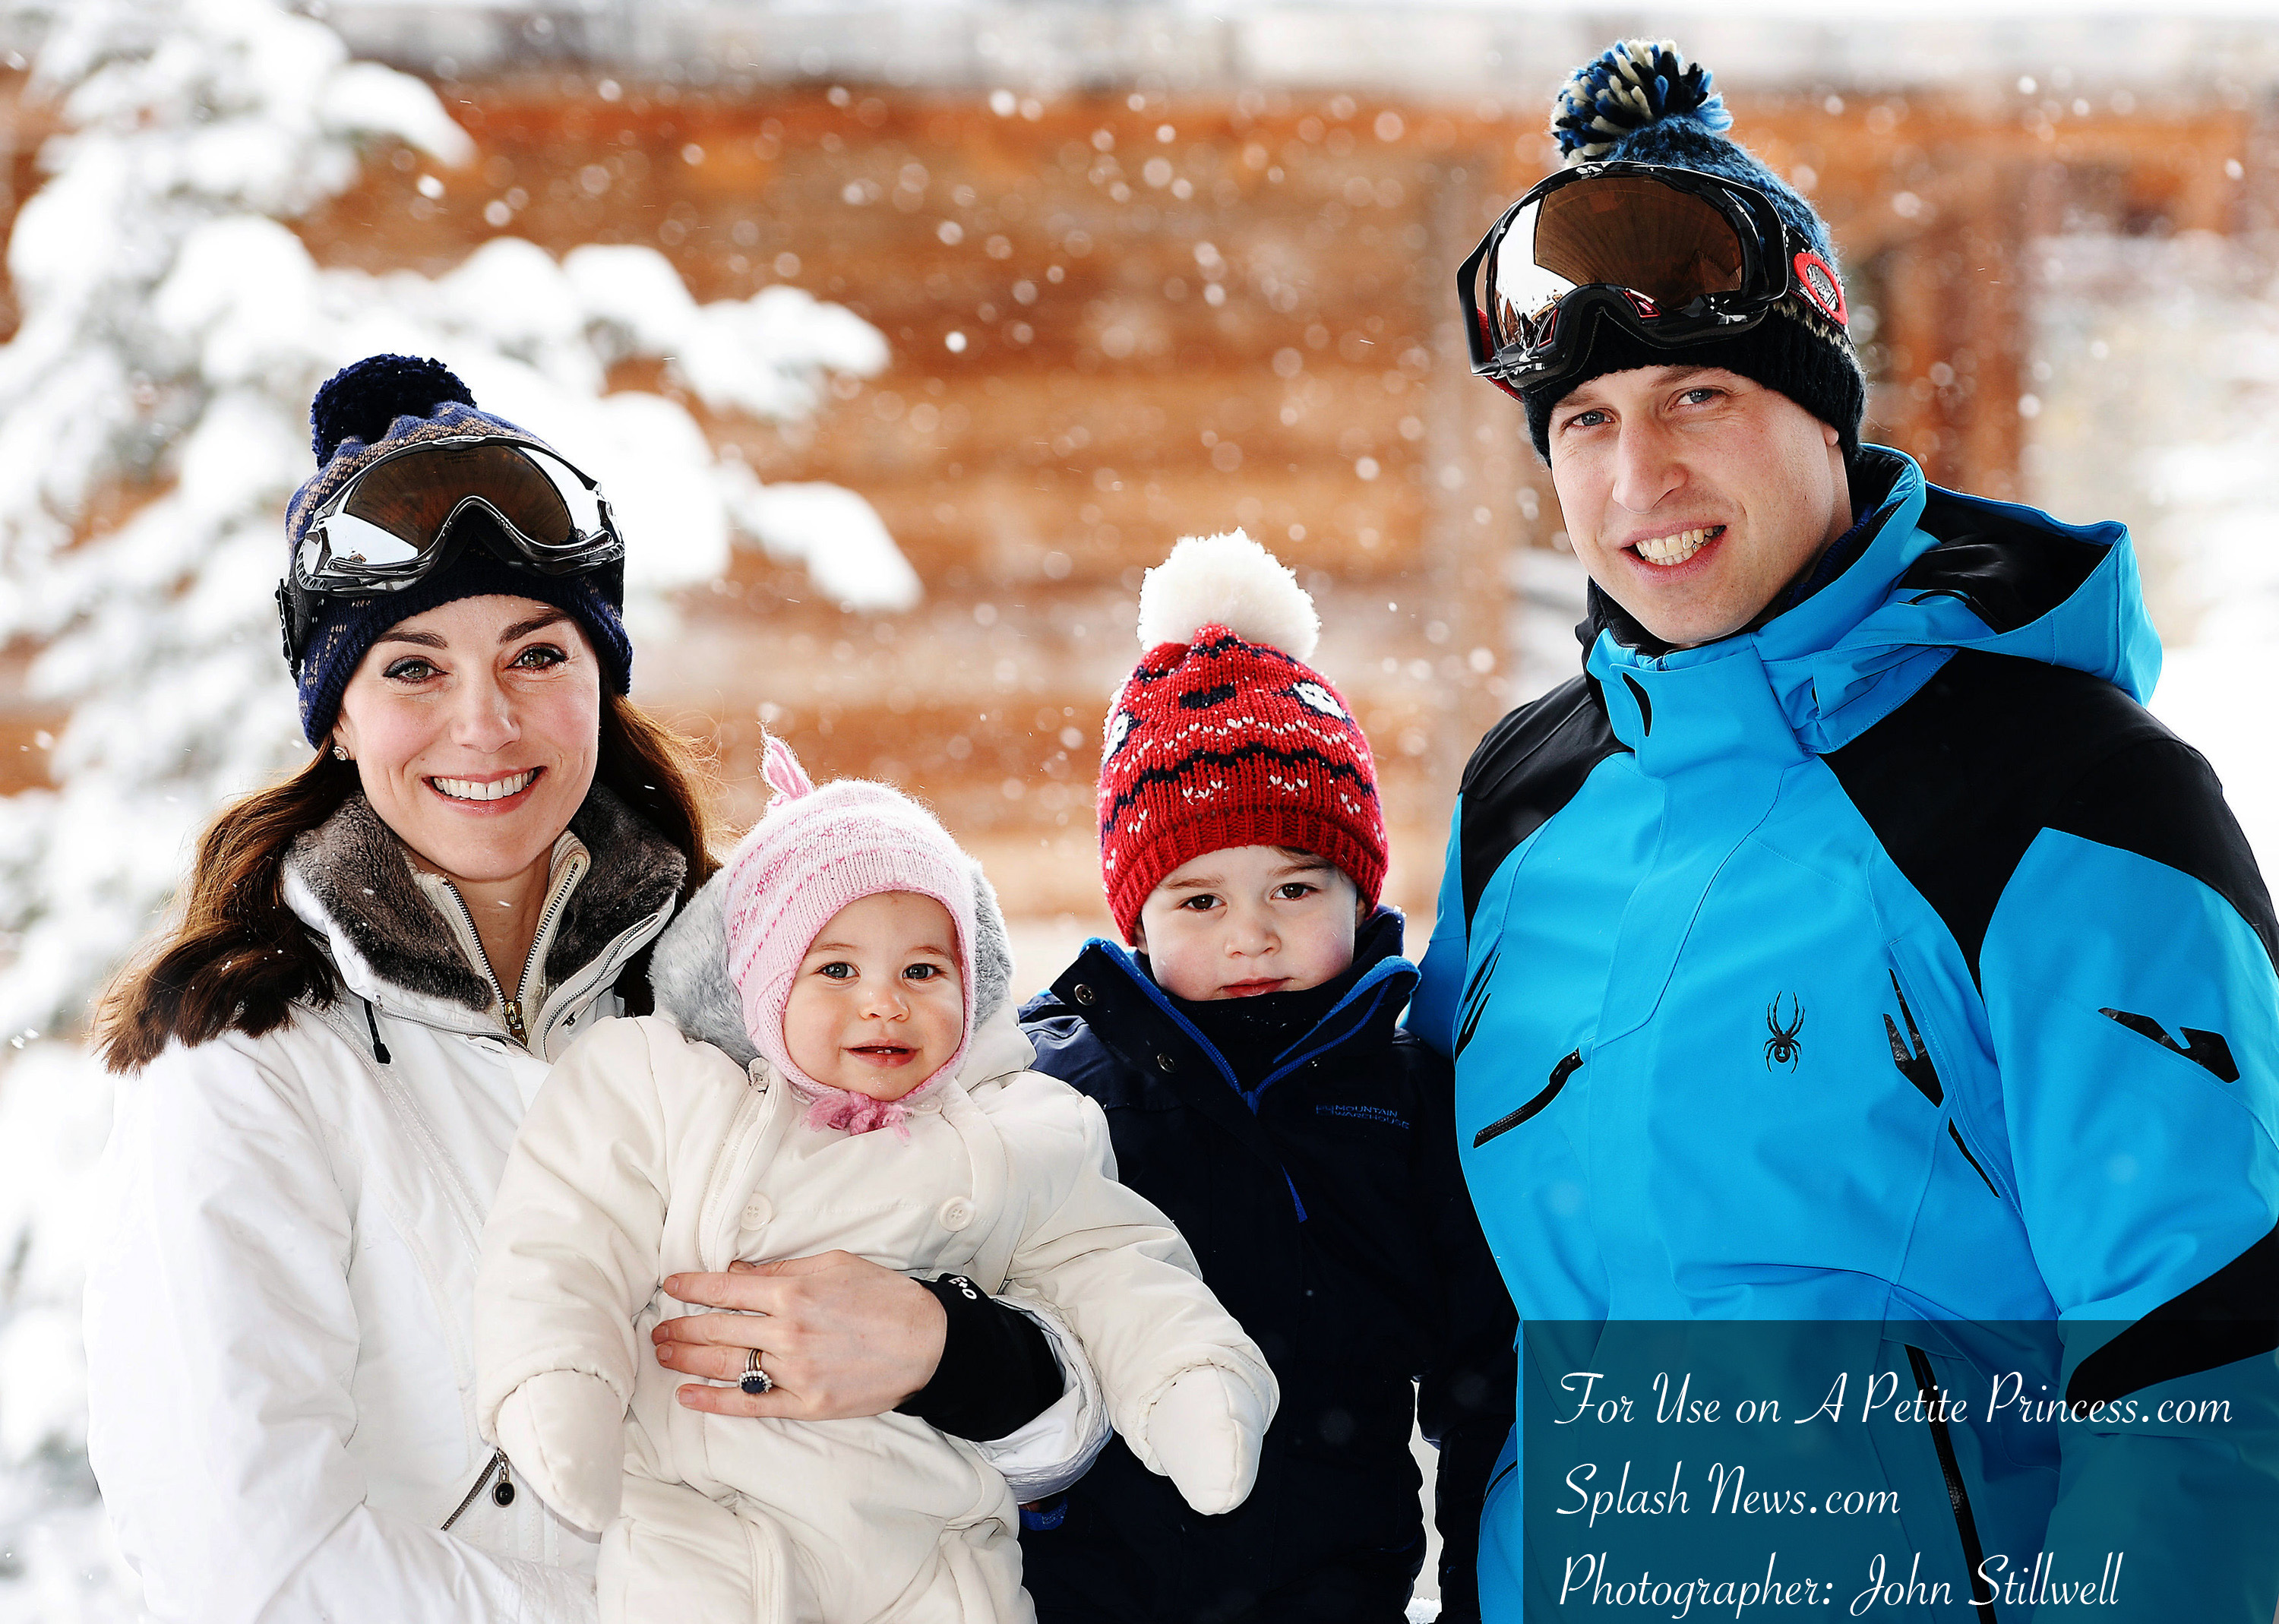 The Duke and Duchess of Cambridge, Prince George and Princess Charlotte enjoy a skiing holiday in the French Alps in France on the 7th March 2016. EDITORIAL USE ONLY Picture by John Stillwell/WPA-Pool Pictured: Duchess of Cambridge, Catherine, Kate Middleton, Princess Charlotte, Prince George, Prince William, Duke of Cambridge Ref: SPL1240472  070316   Picture by: Splash News Splash News and Pictures Los Angeles:310-821-2666 New York:212-619-2666 London:870-934-2666 photodesk@splashnews.com